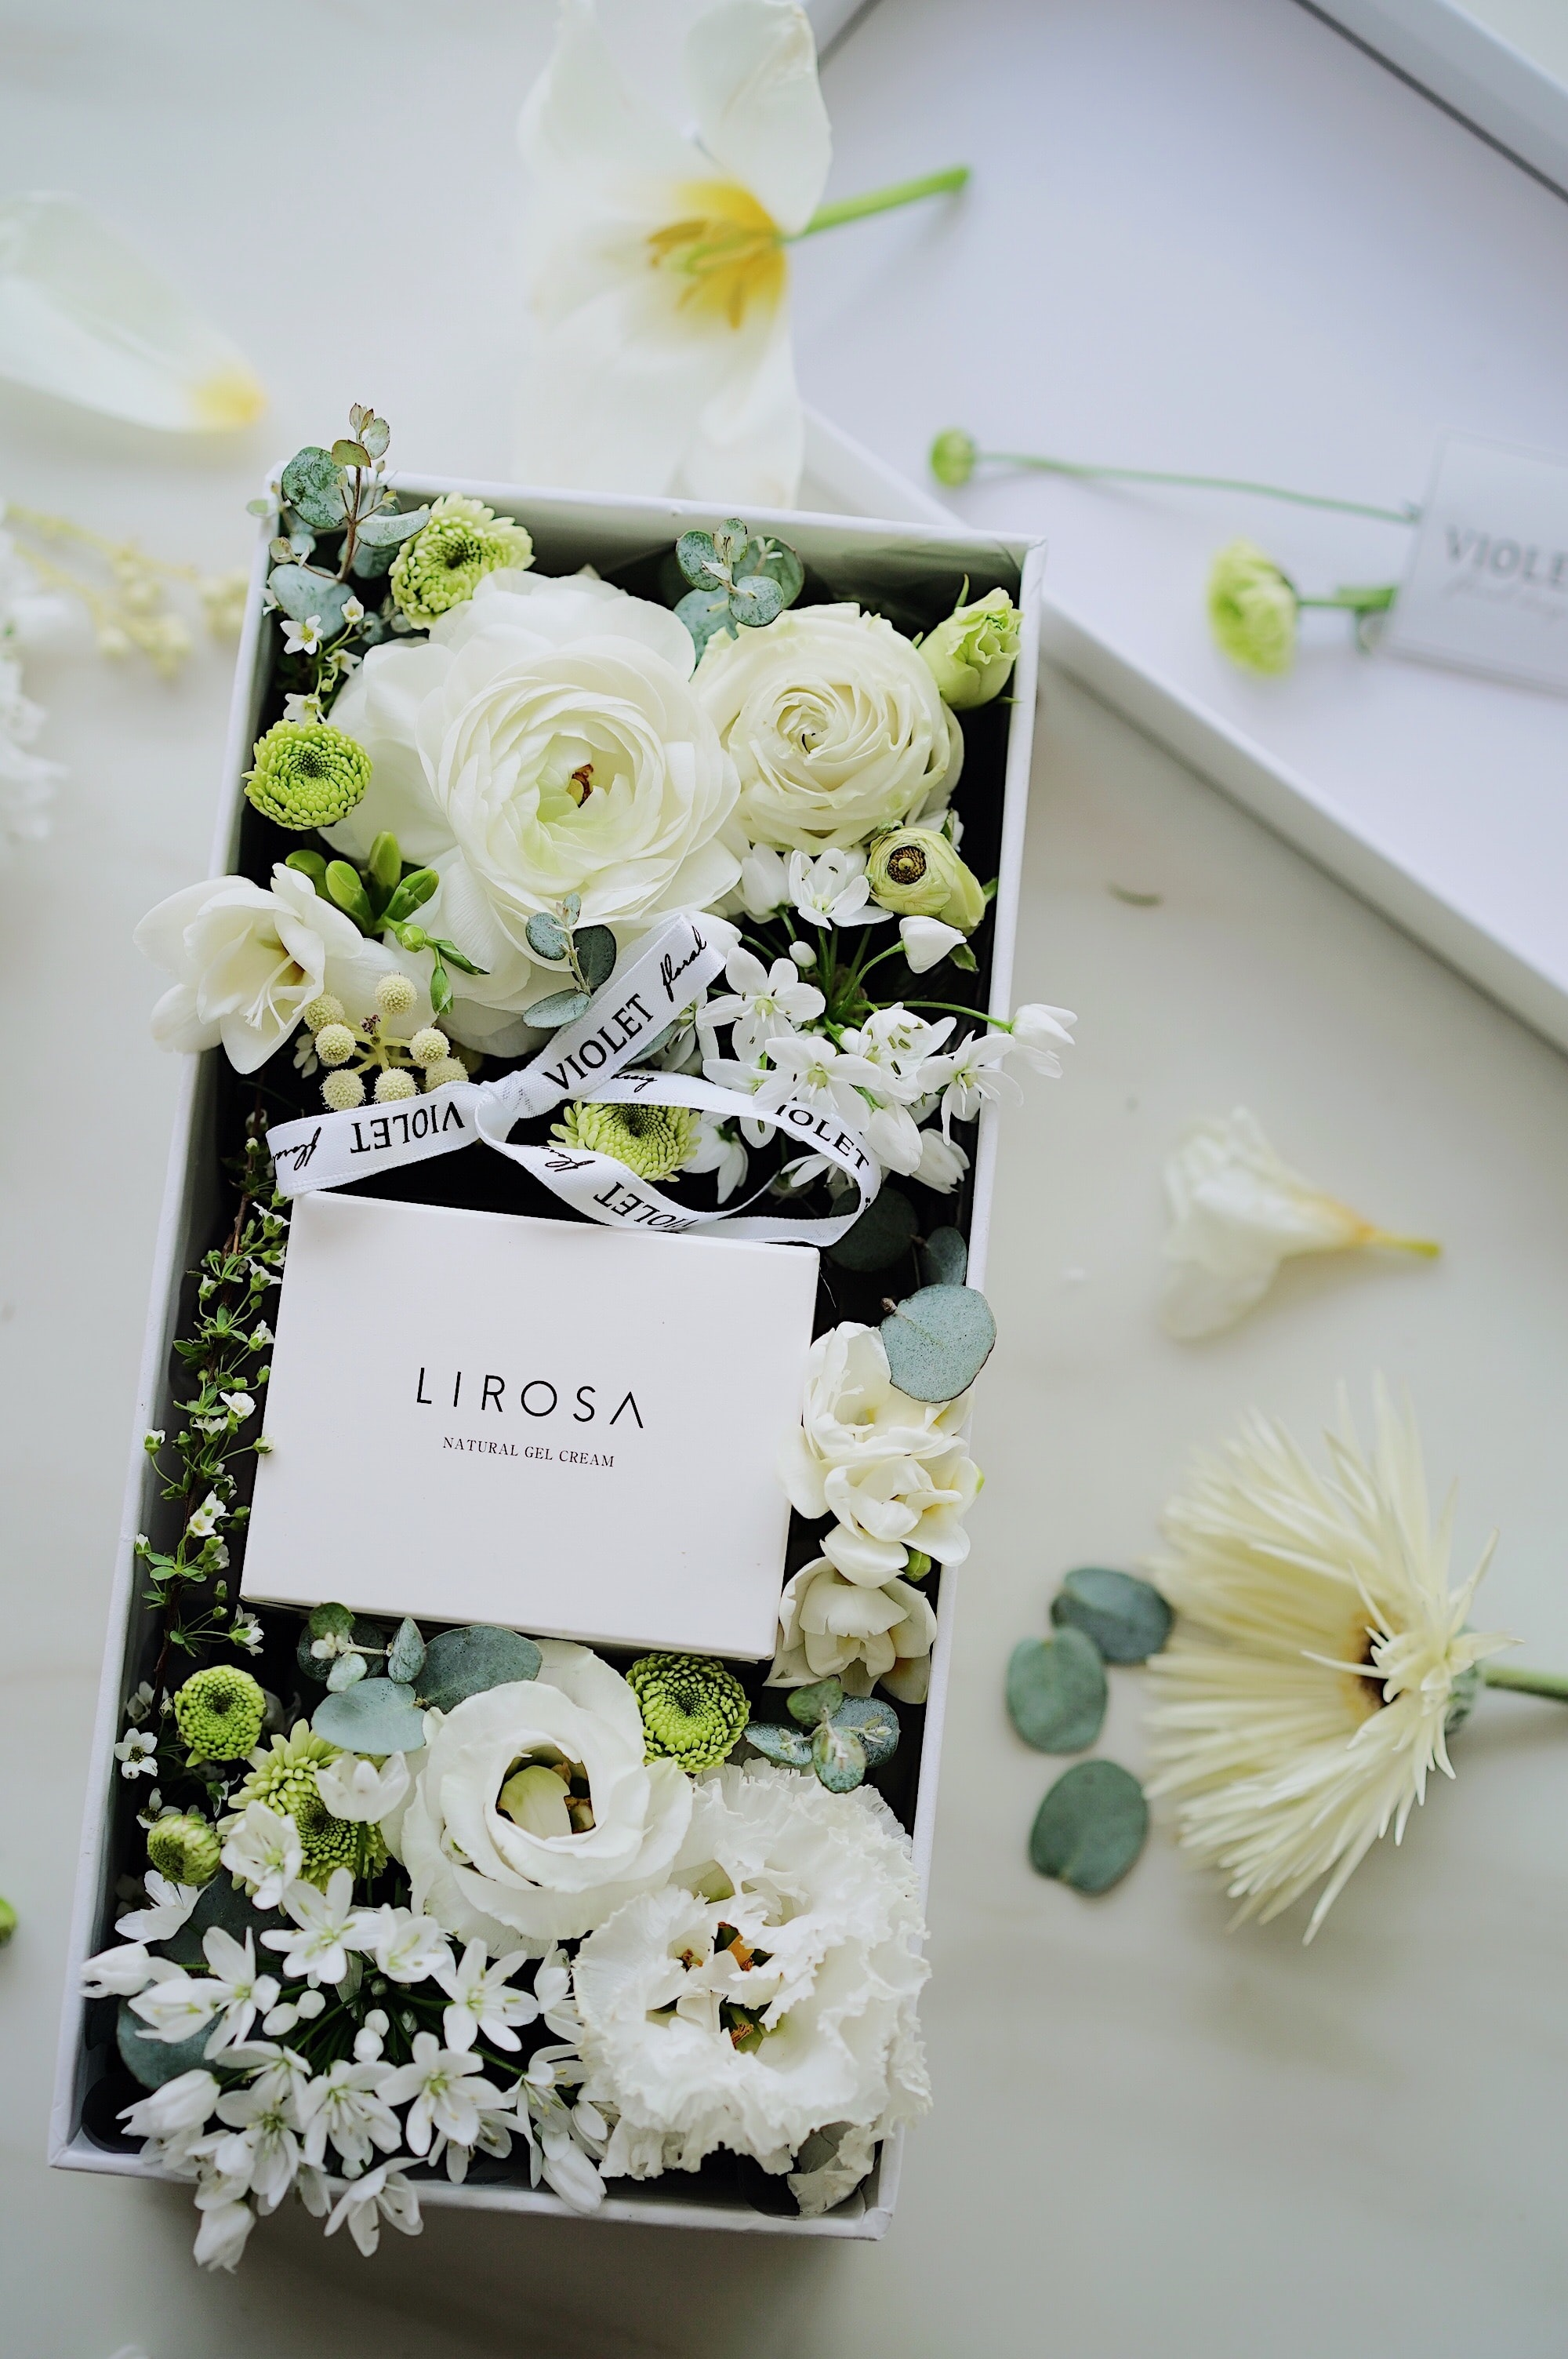 Lirosa flowers in box